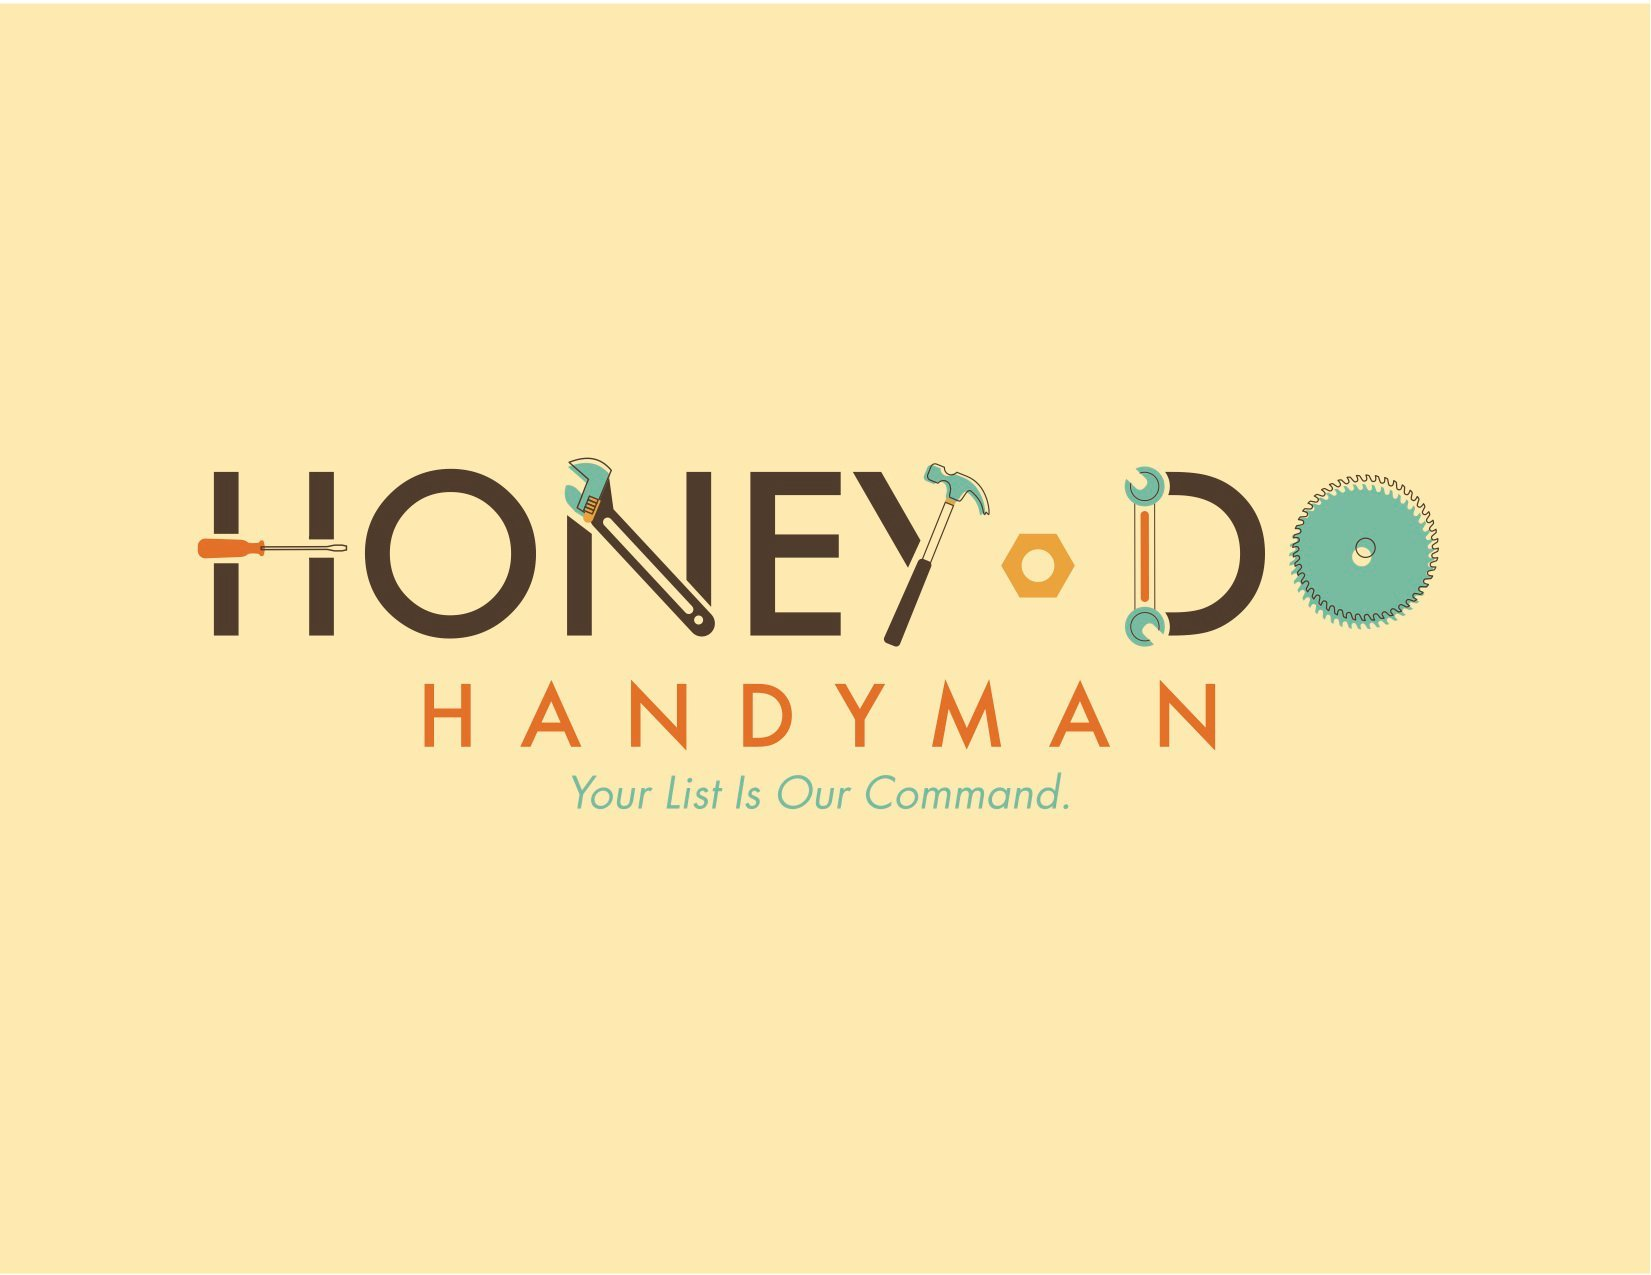 Honey-Do Handyman